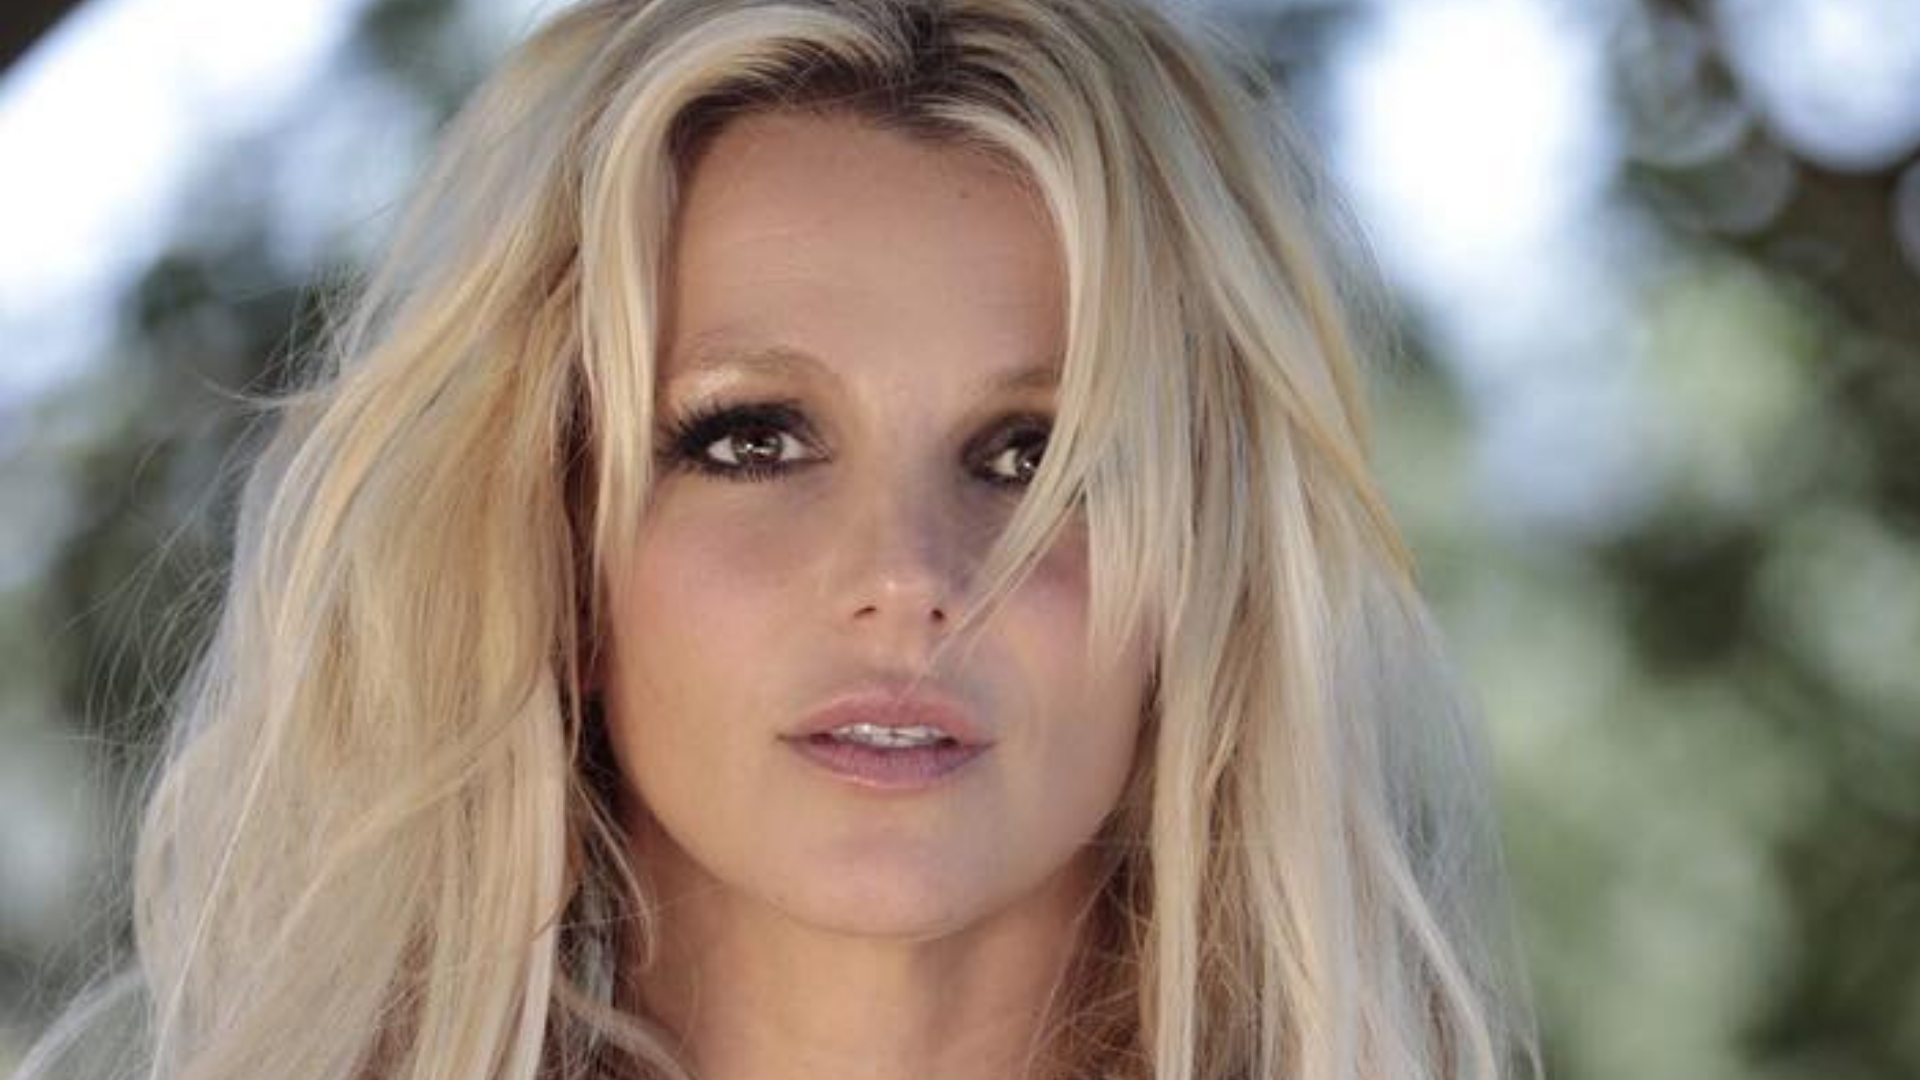 Why Is Everyone Hashtagging 'Free Britney'?